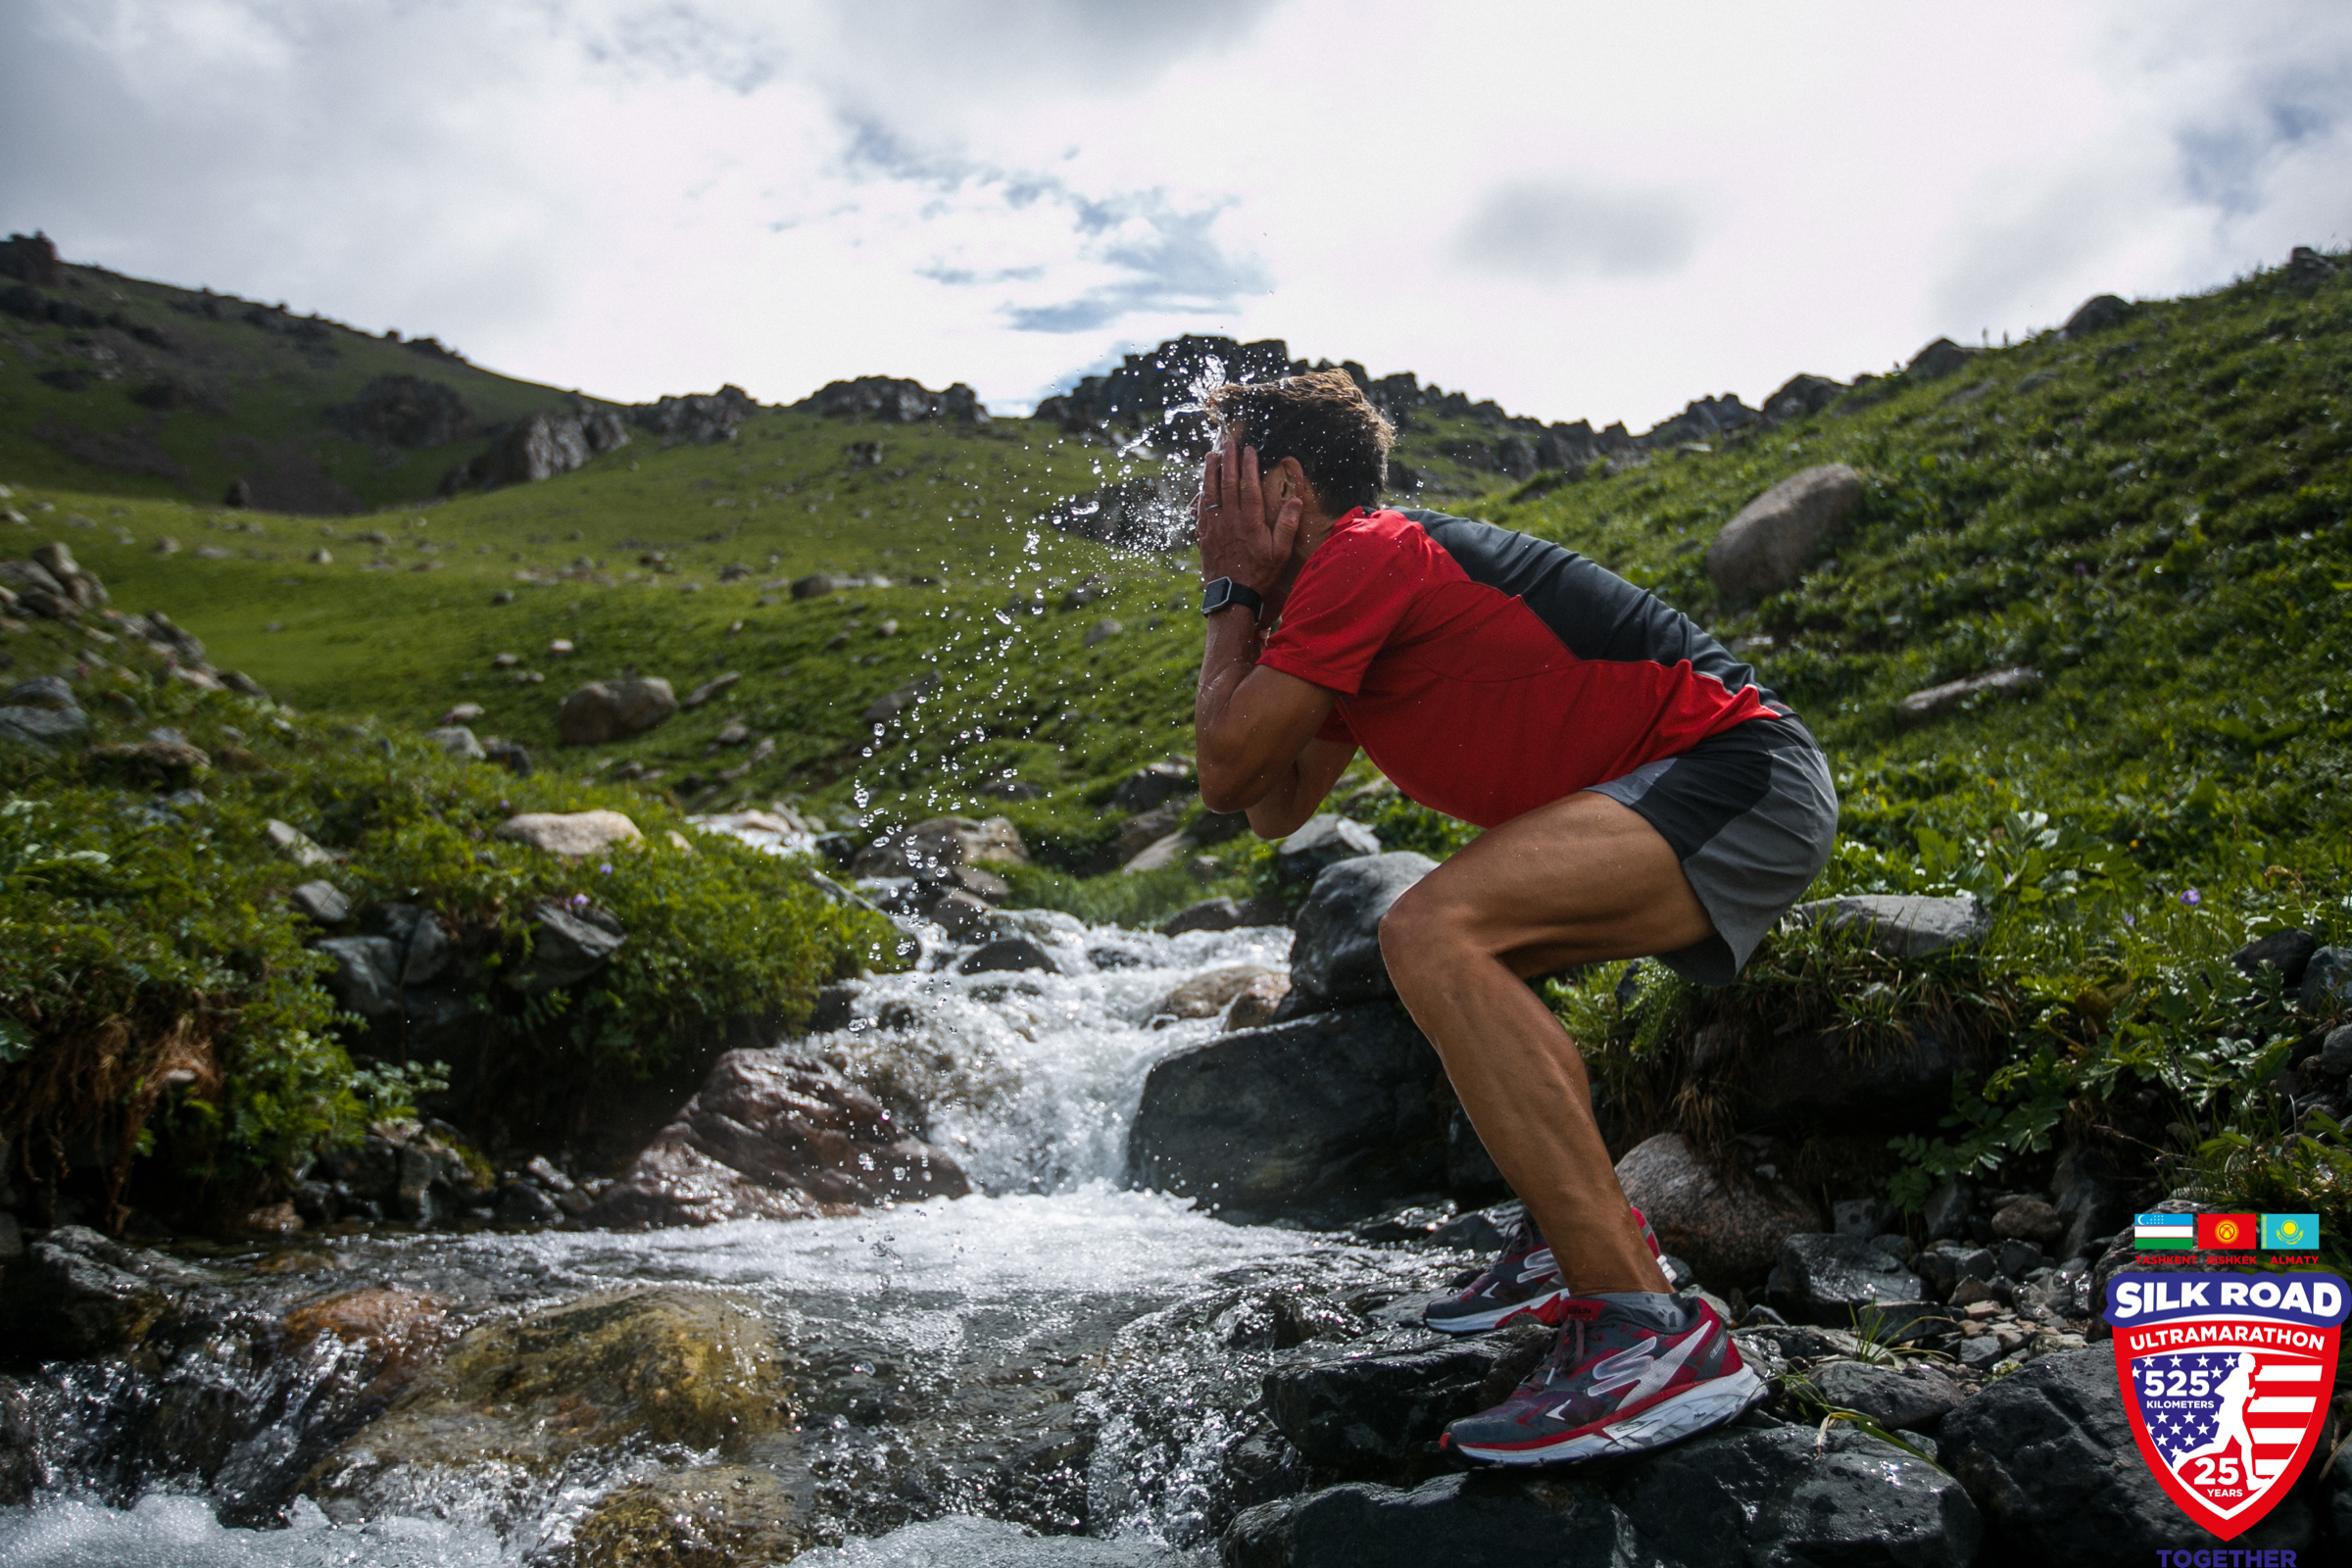 Dean cools off by splashing his face with water from a mountain stream